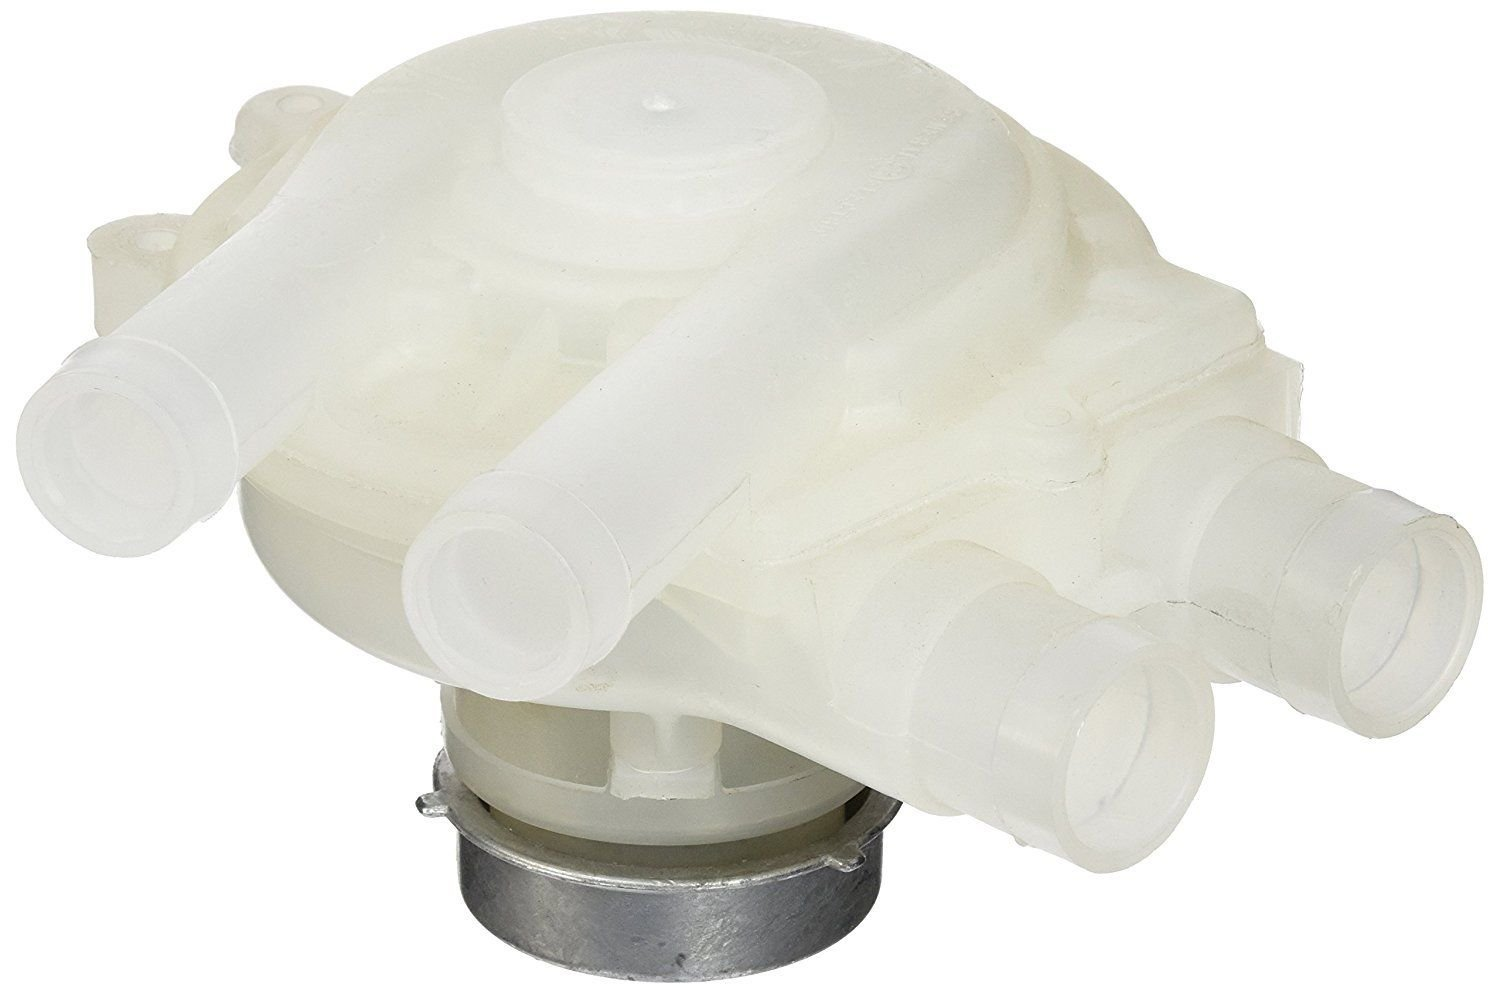 WH23X42 Replacement for Washing Machine Pump Fits GE, Whirlpool, Hot Point